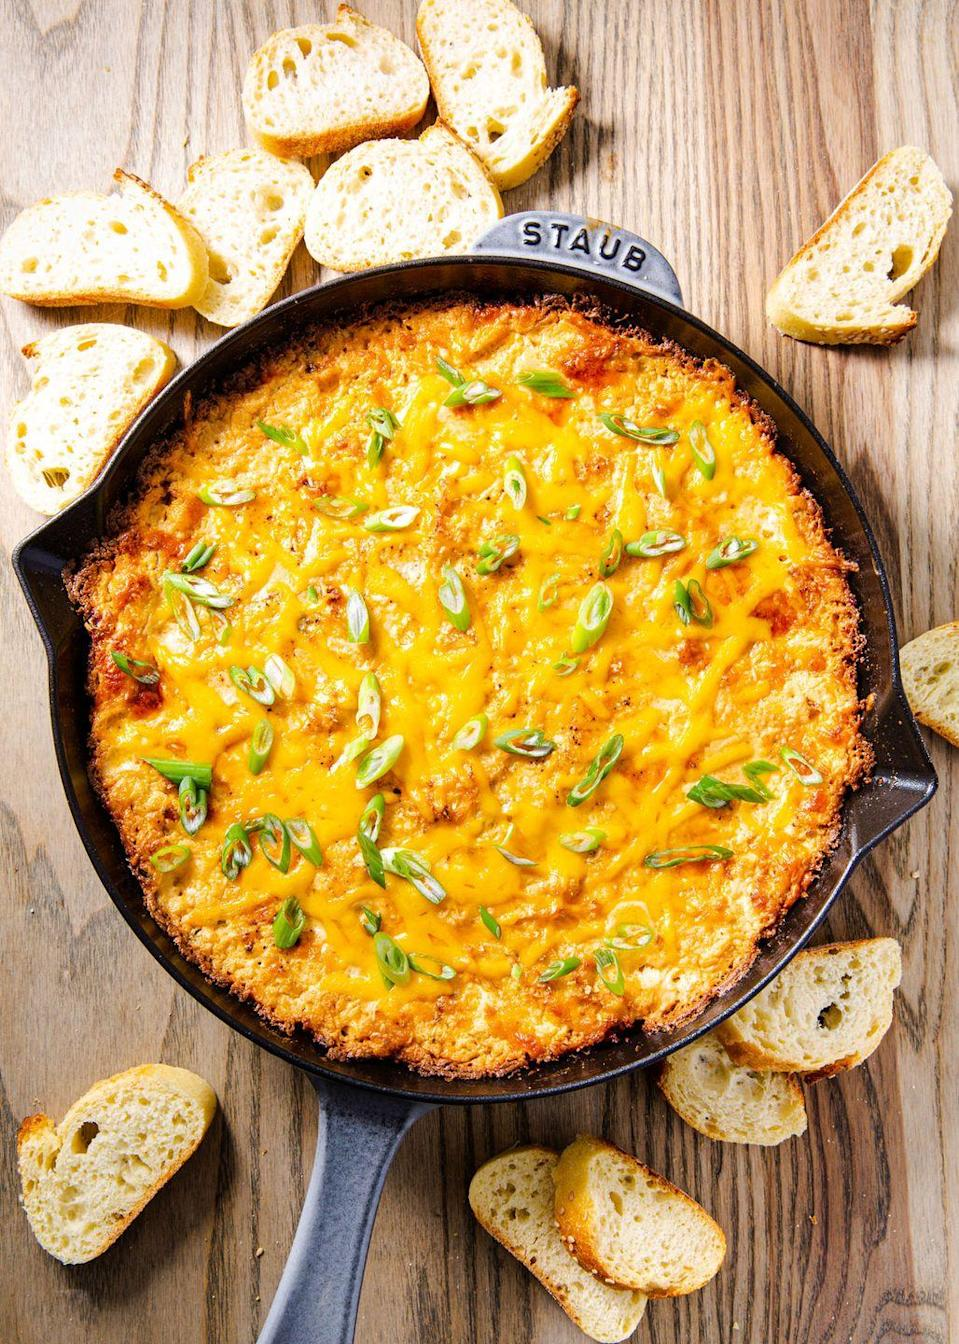 """<p>You won't be crabby when you eat this.</p><p>Get the recipe from <a href=""""https://www.delish.com/cooking/recipe-ideas/a30195933/easy-hot-crab-dip-recipe/"""" rel=""""nofollow noopener"""" target=""""_blank"""" data-ylk=""""slk:Delish"""" class=""""link rapid-noclick-resp"""">Delish</a>.</p>"""